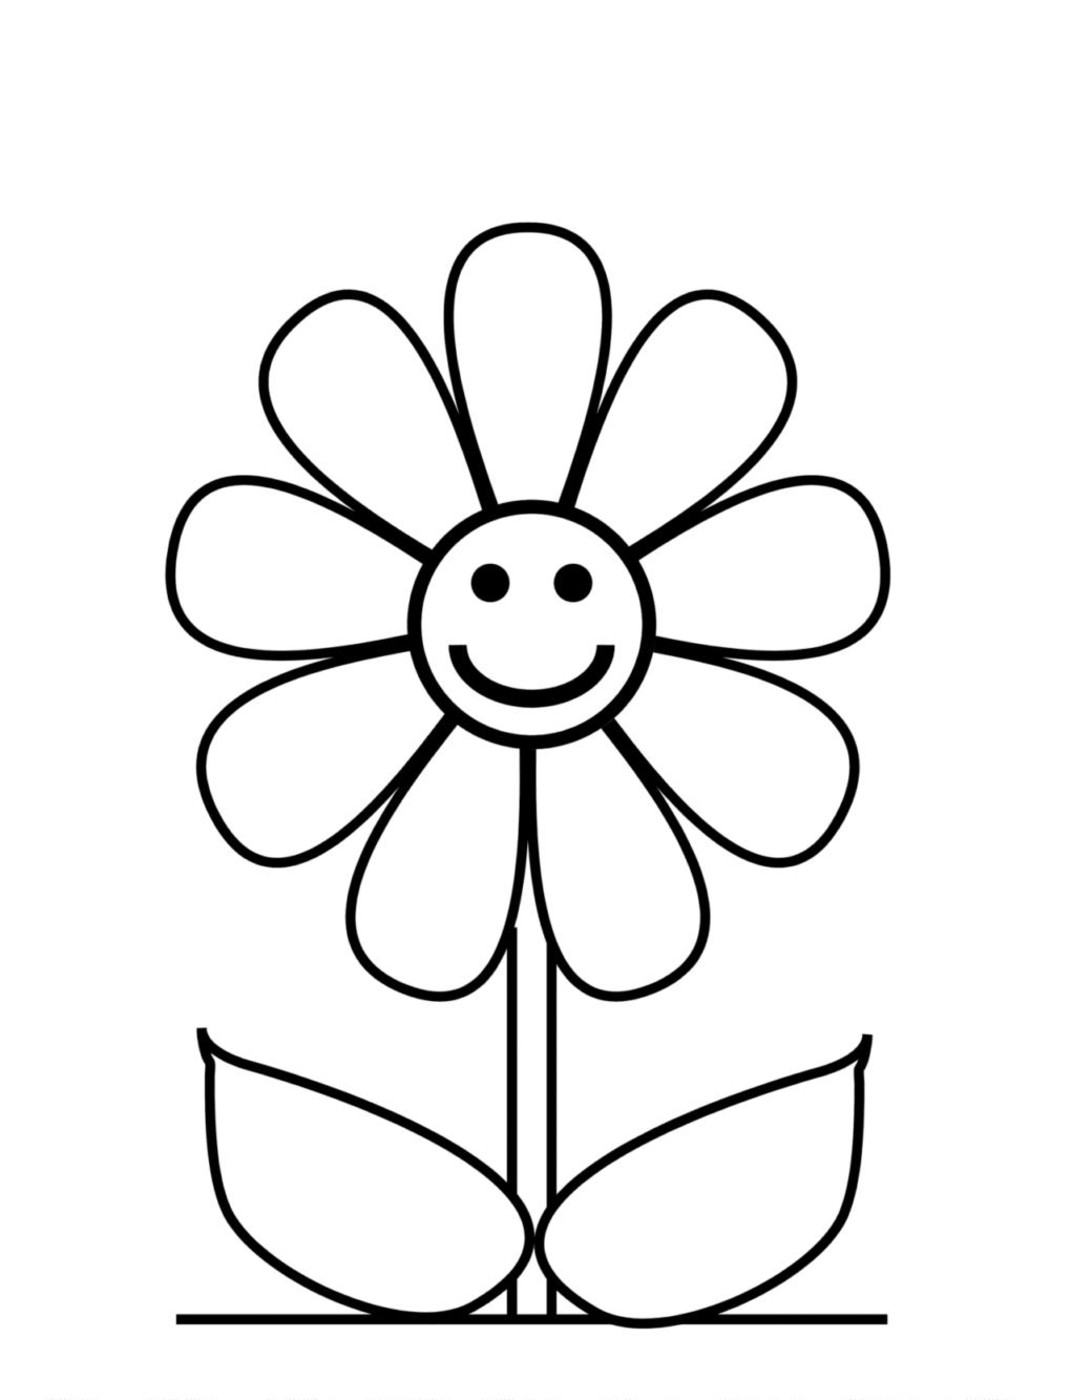 cute flower coloring pages kawaii cute flower coloring pages coloring pages coloring cute flower pages